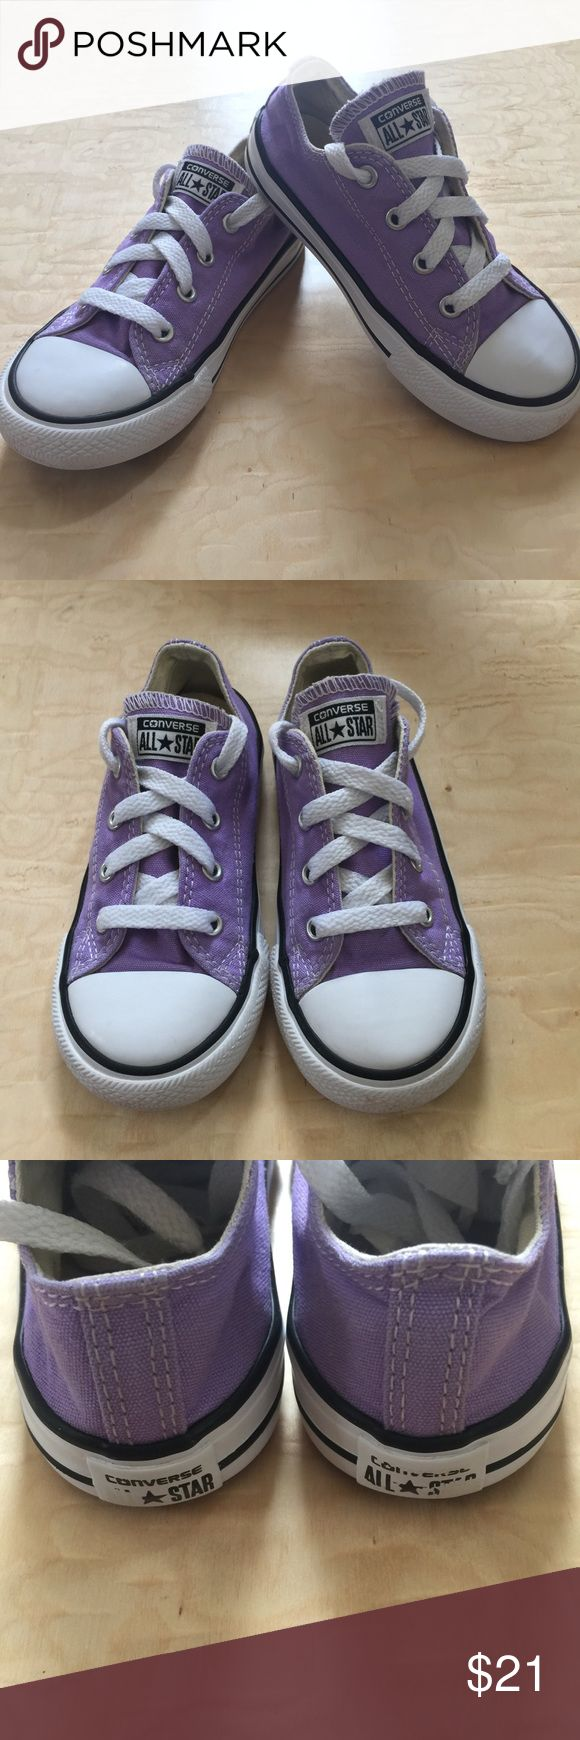 Converse for toddler size 9 Purple Converse for toddler girl. Super cute and very good used condition. Converse Shoes Sneakers